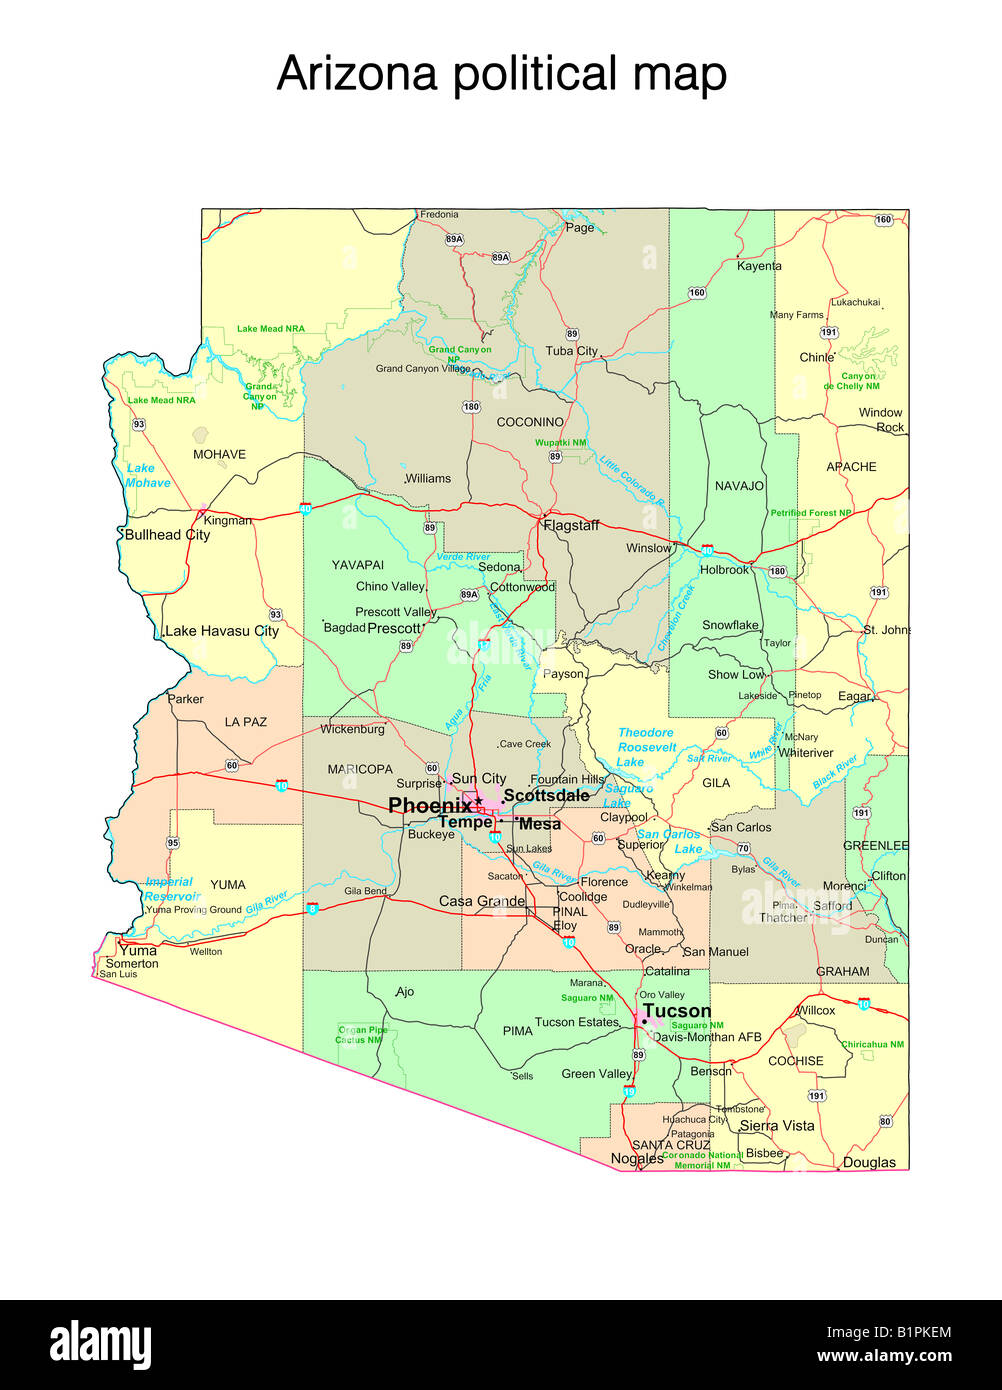 Arizona State Political Map Stock Photo Royalty Free Image - Map of the arizona